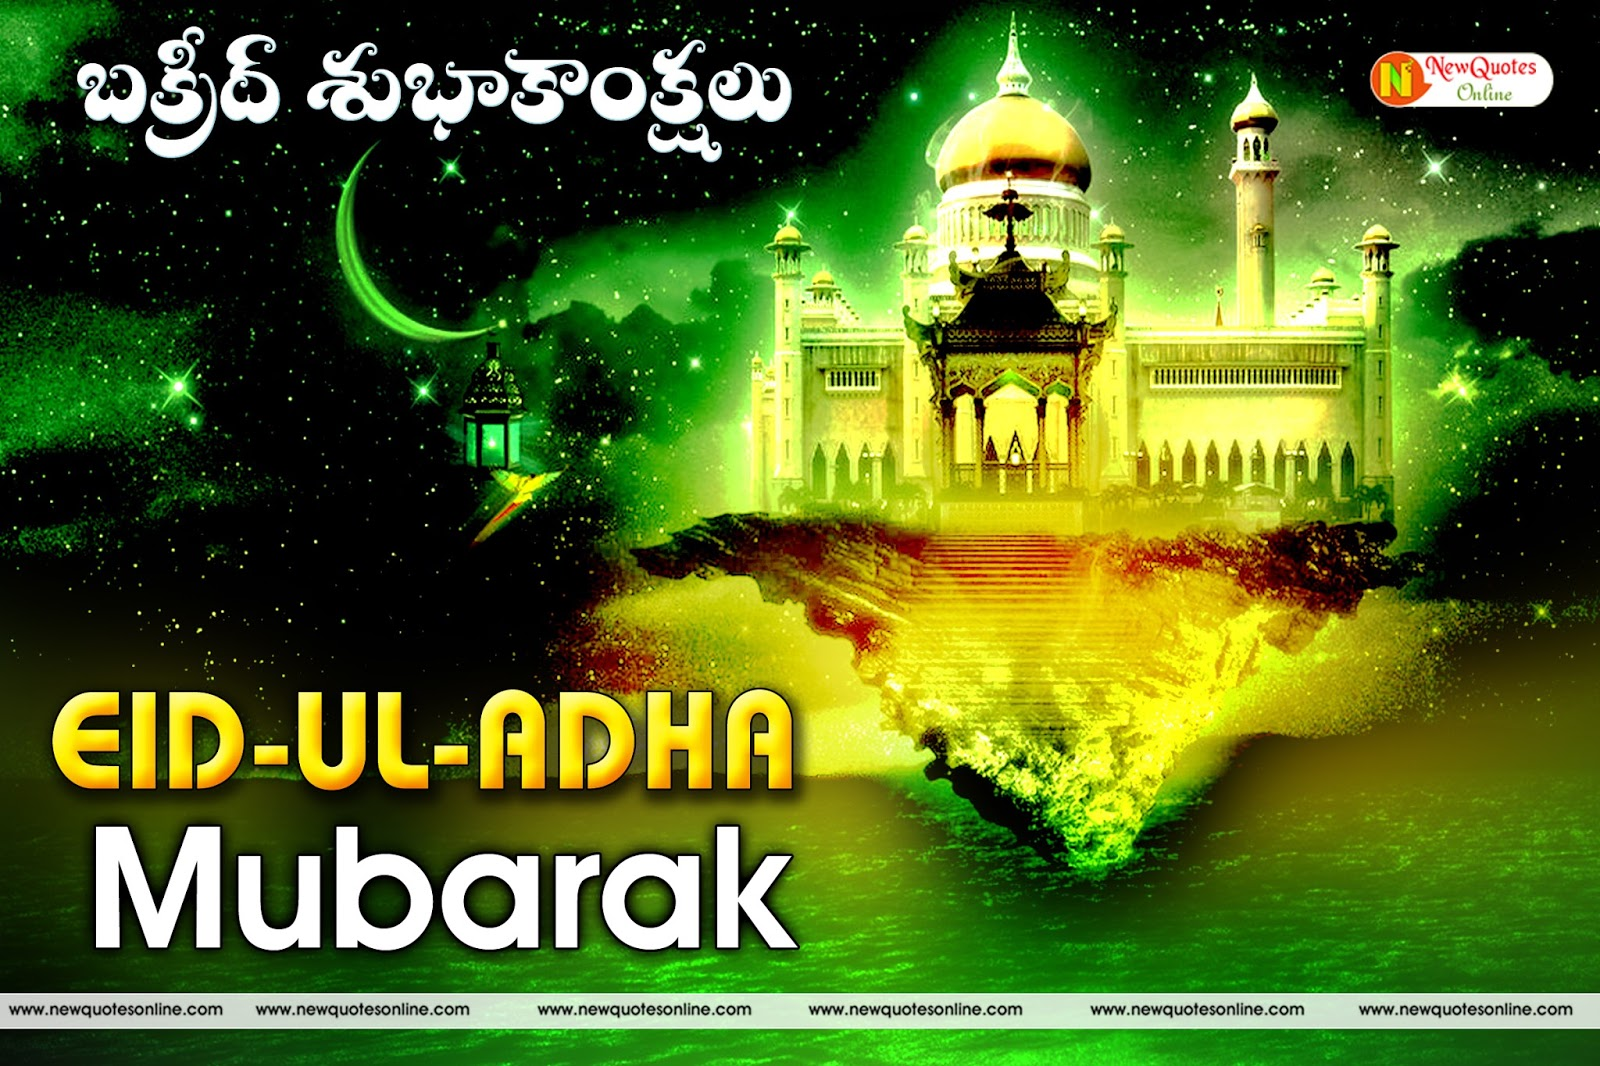 Latest Greetings Wishes Images On Bakrid Festival - New Quotes